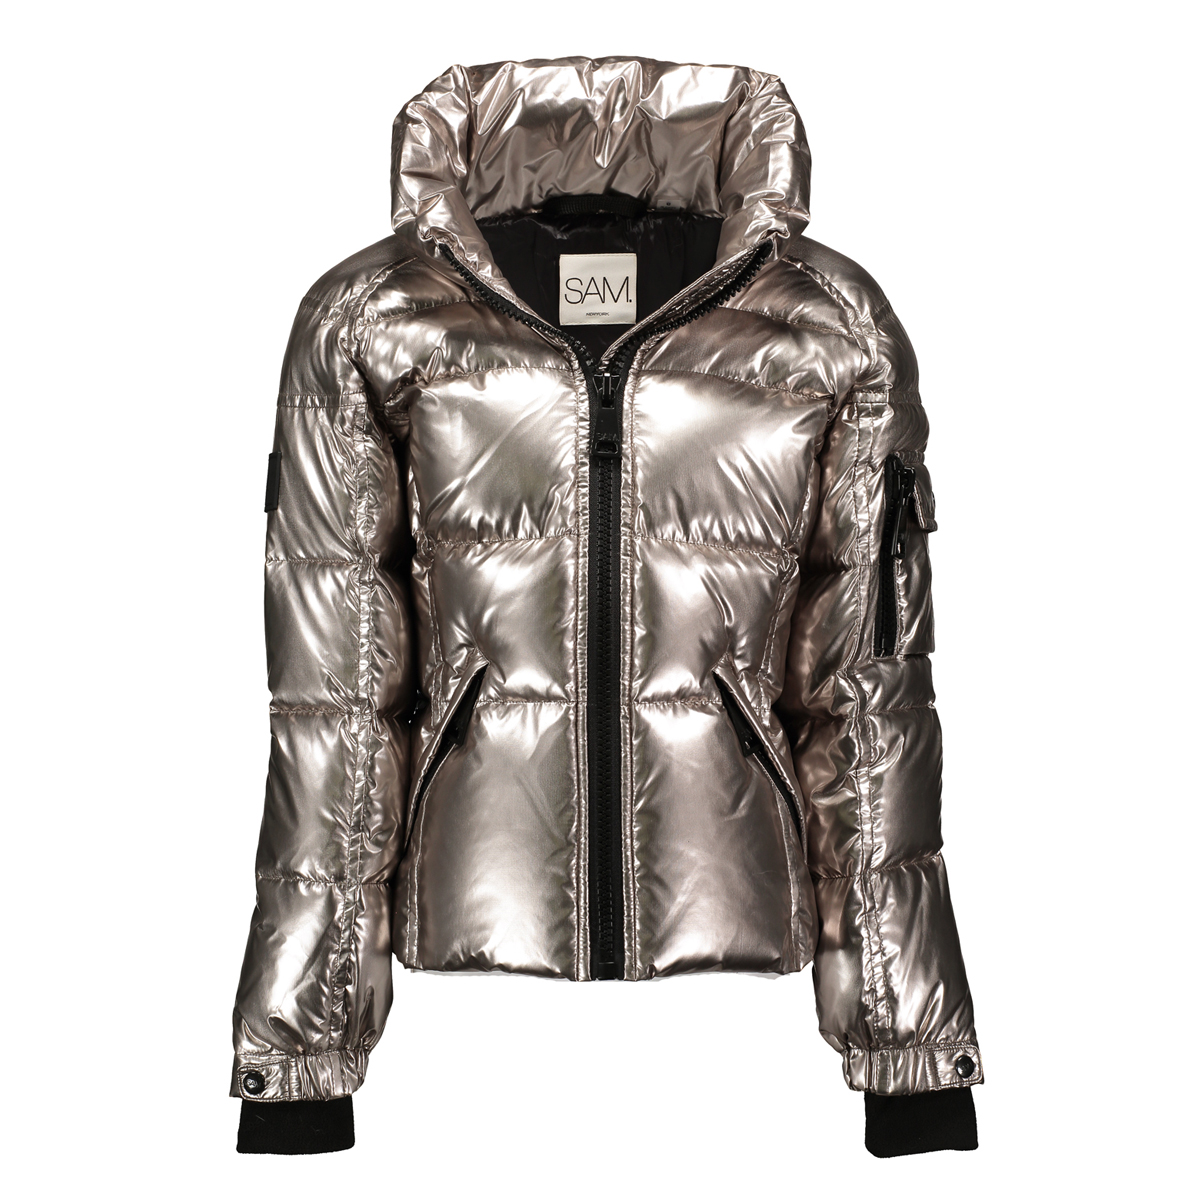 SAM NYC Girls Freestyle Coat in Ballerina Pyrite Silver